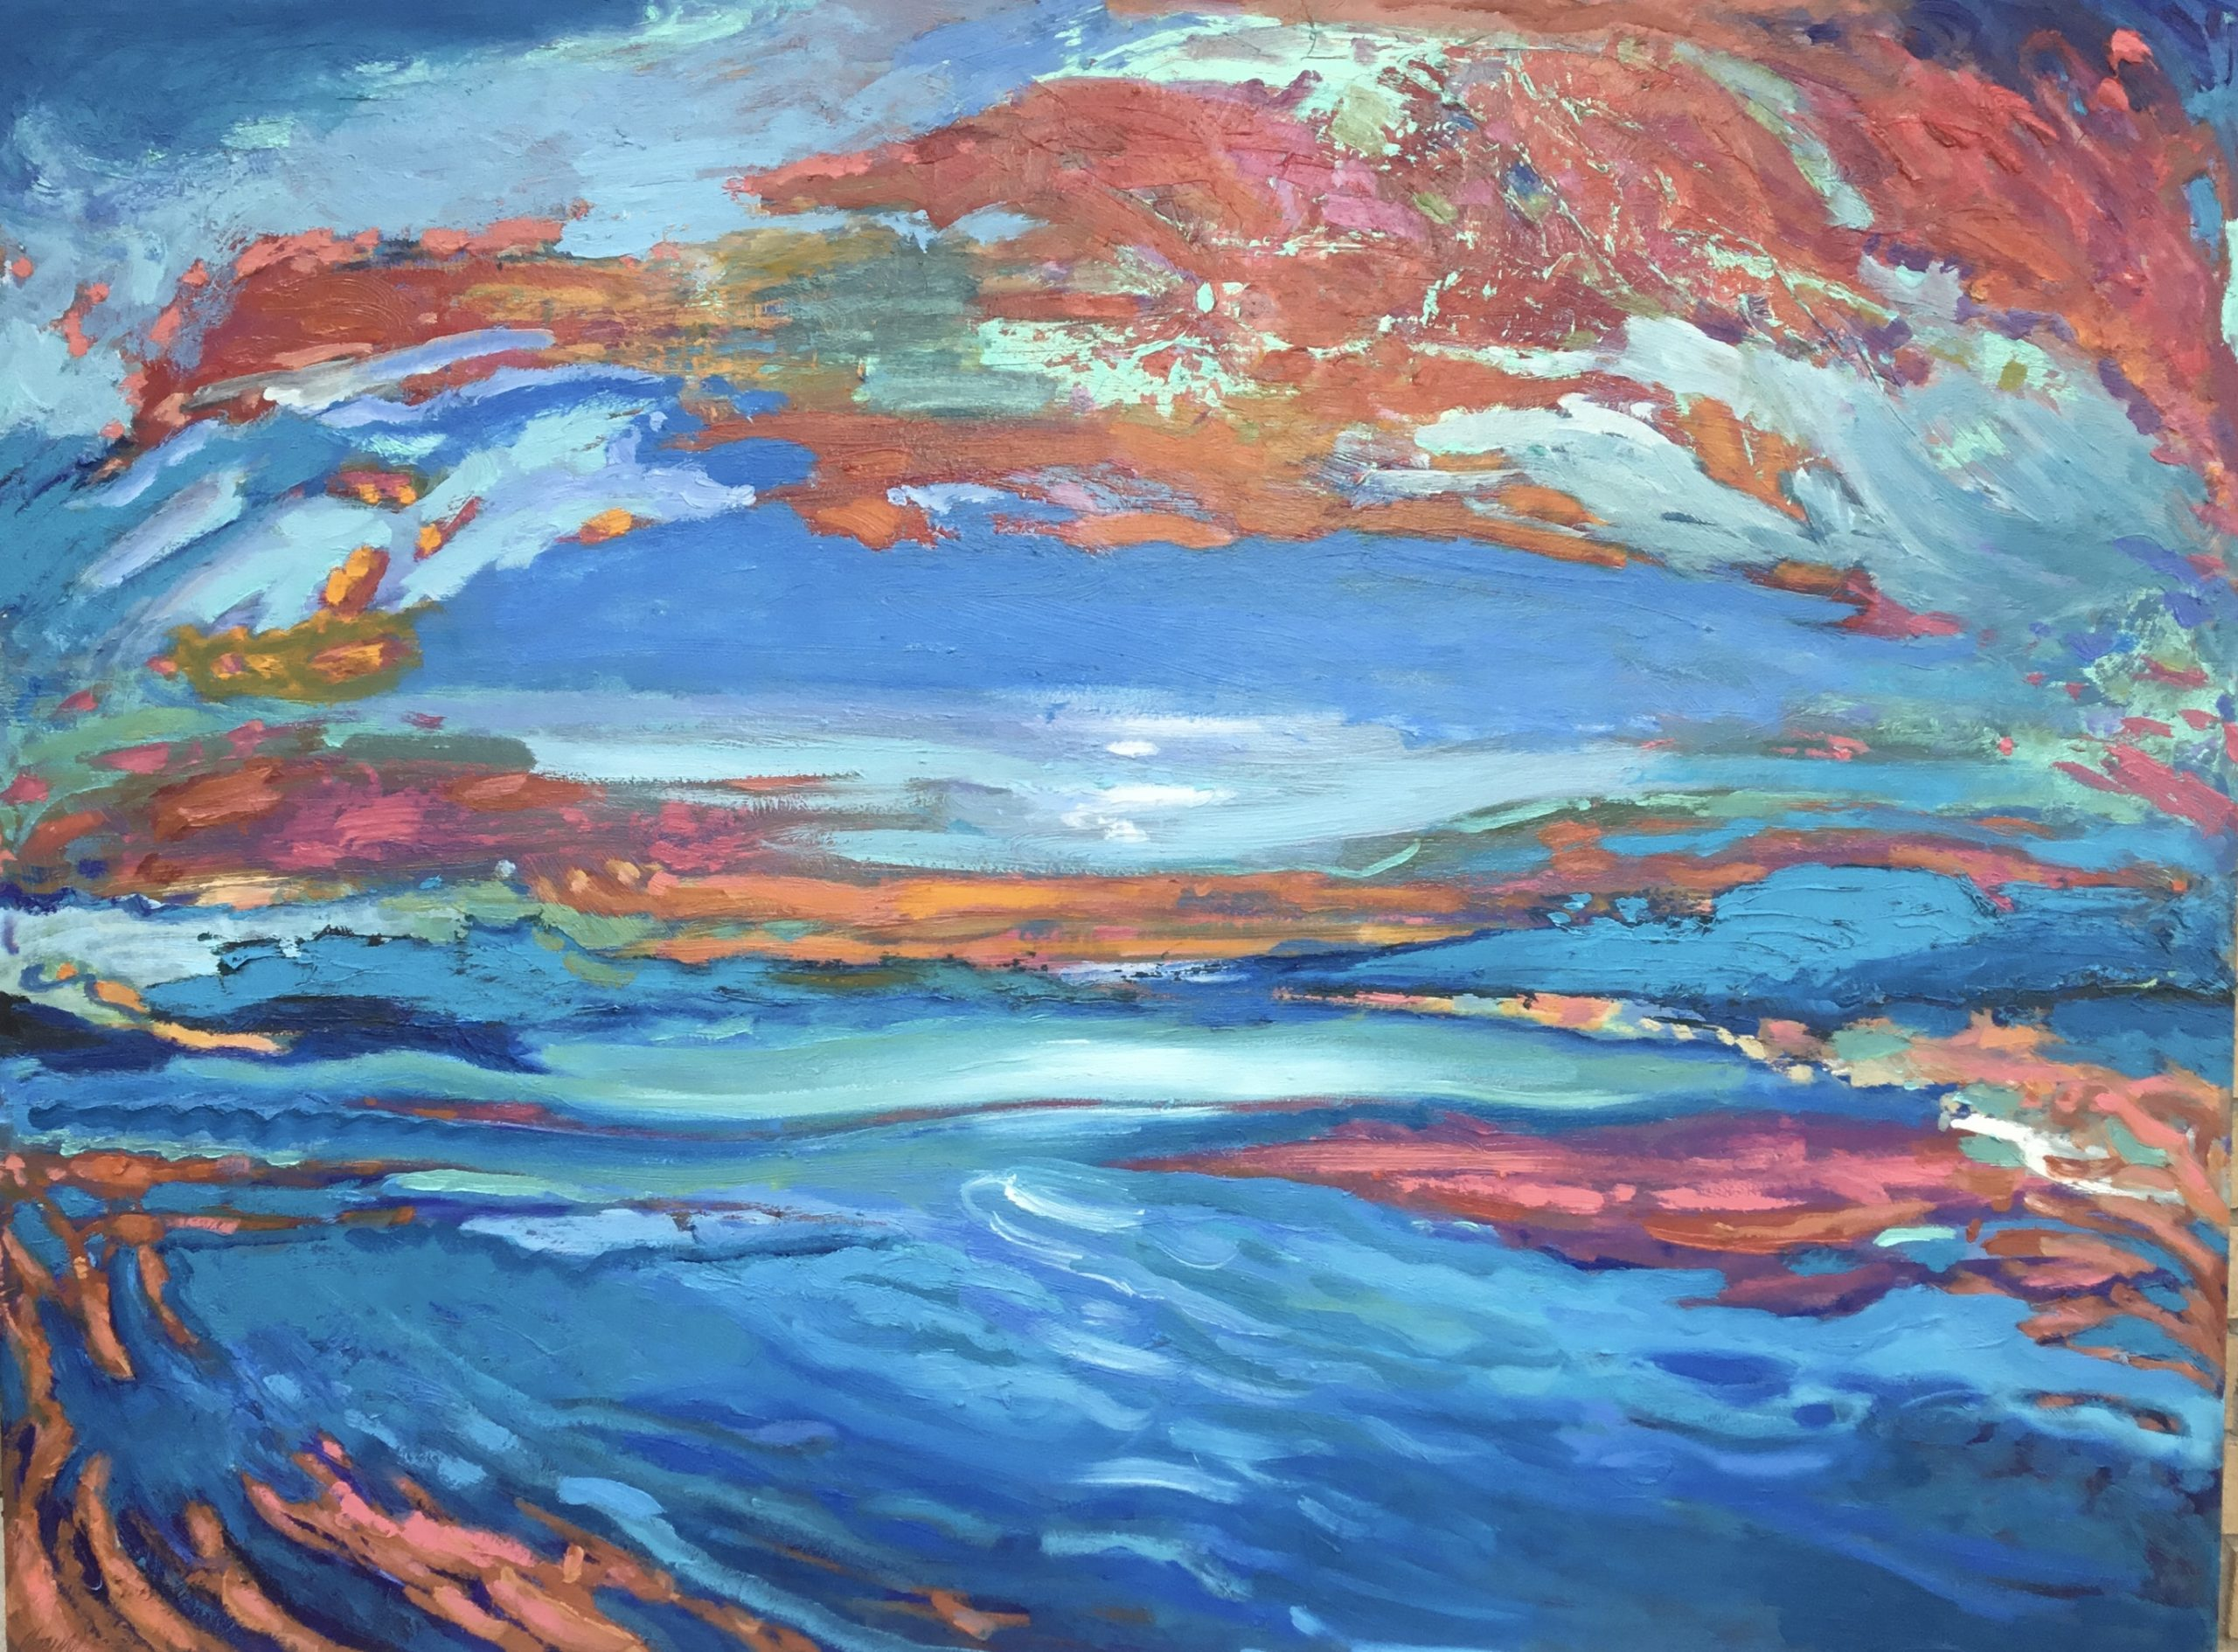 Hawk's View Opal, oil painting by Carol Finkbeiner Thomas | Effusion Art Gallery + Cast Glass Studio, Invermere BC